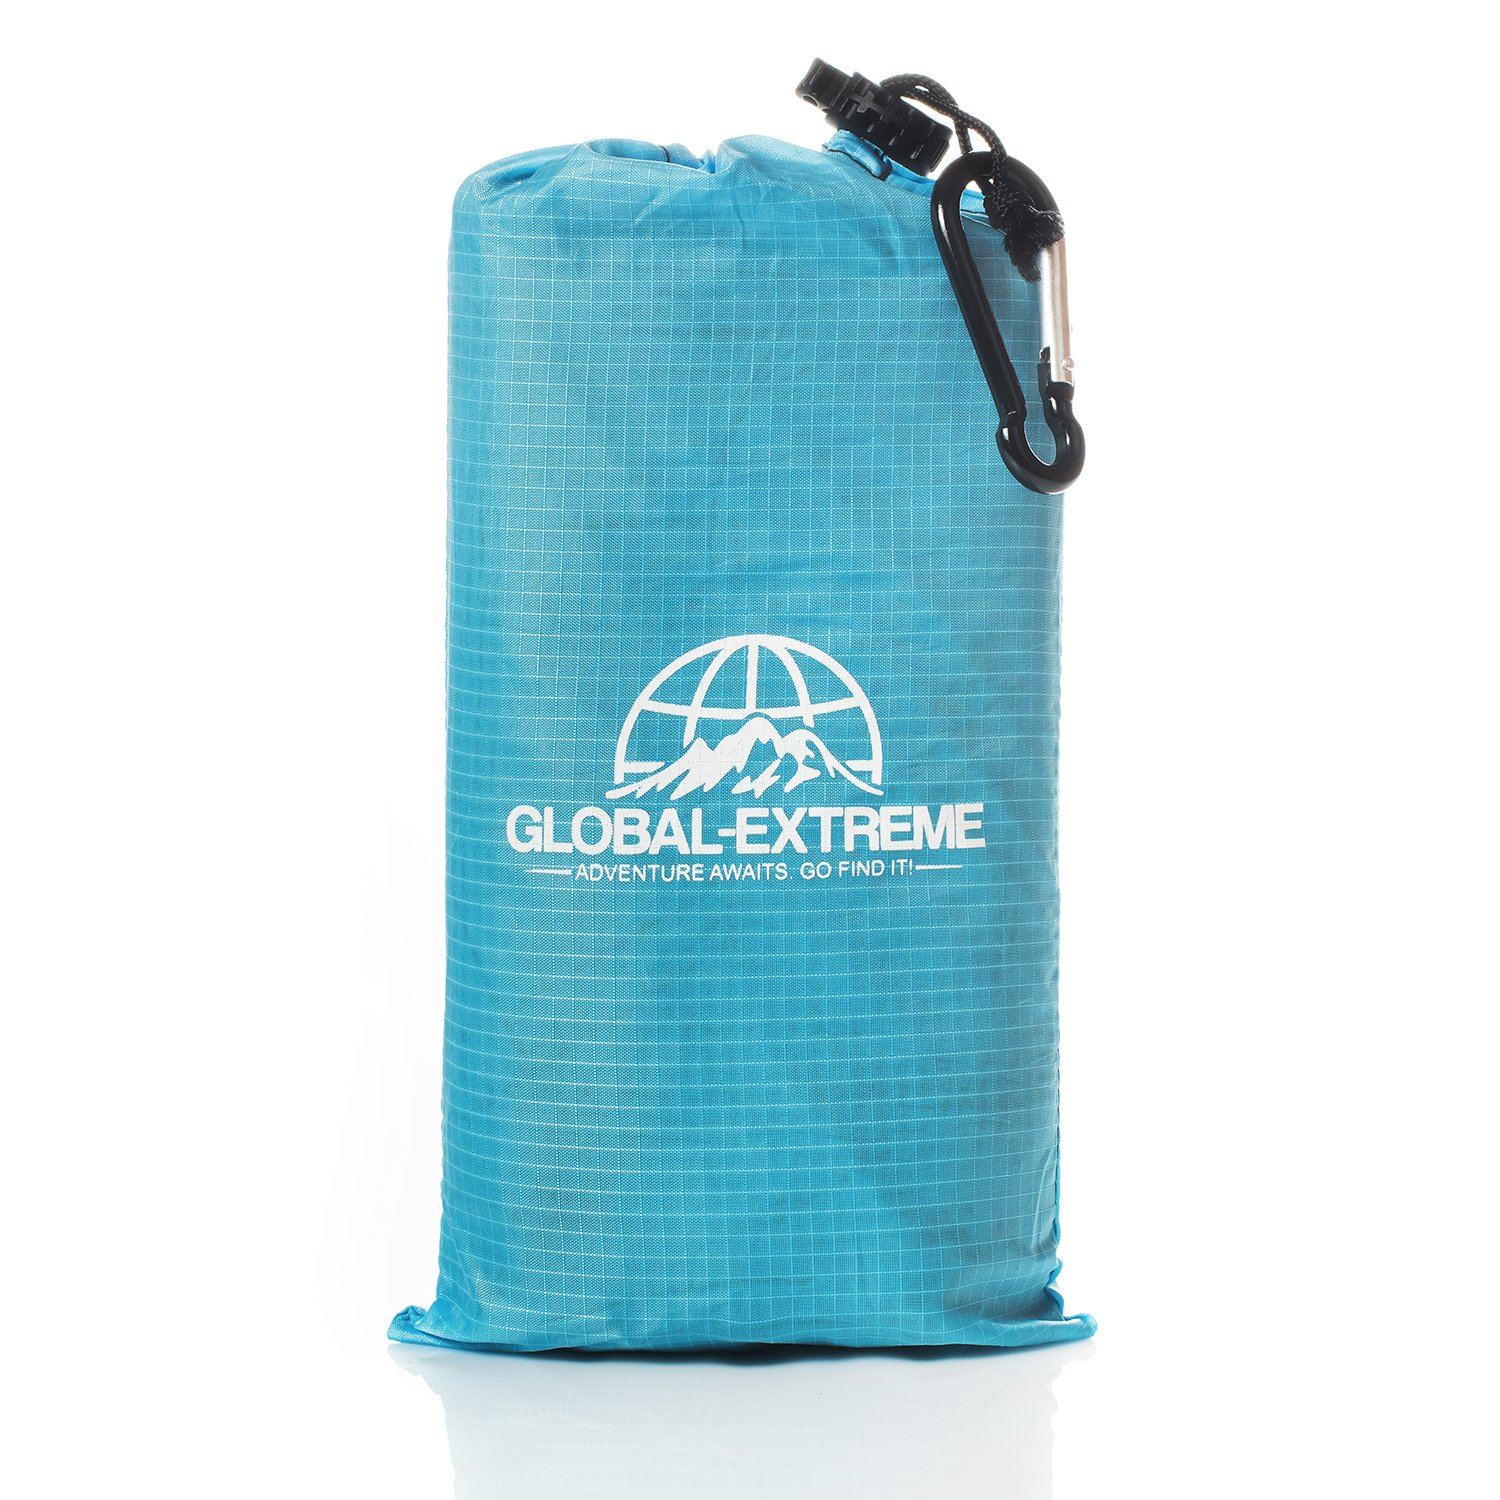 Pocket Blanket - ideal for outdoor picnic hiking camping beach – ultra light waterproof puncture resistant pockets blankets - 4 metal stakes - with flint fire starter – emergency thermal foil by Global-Extreme